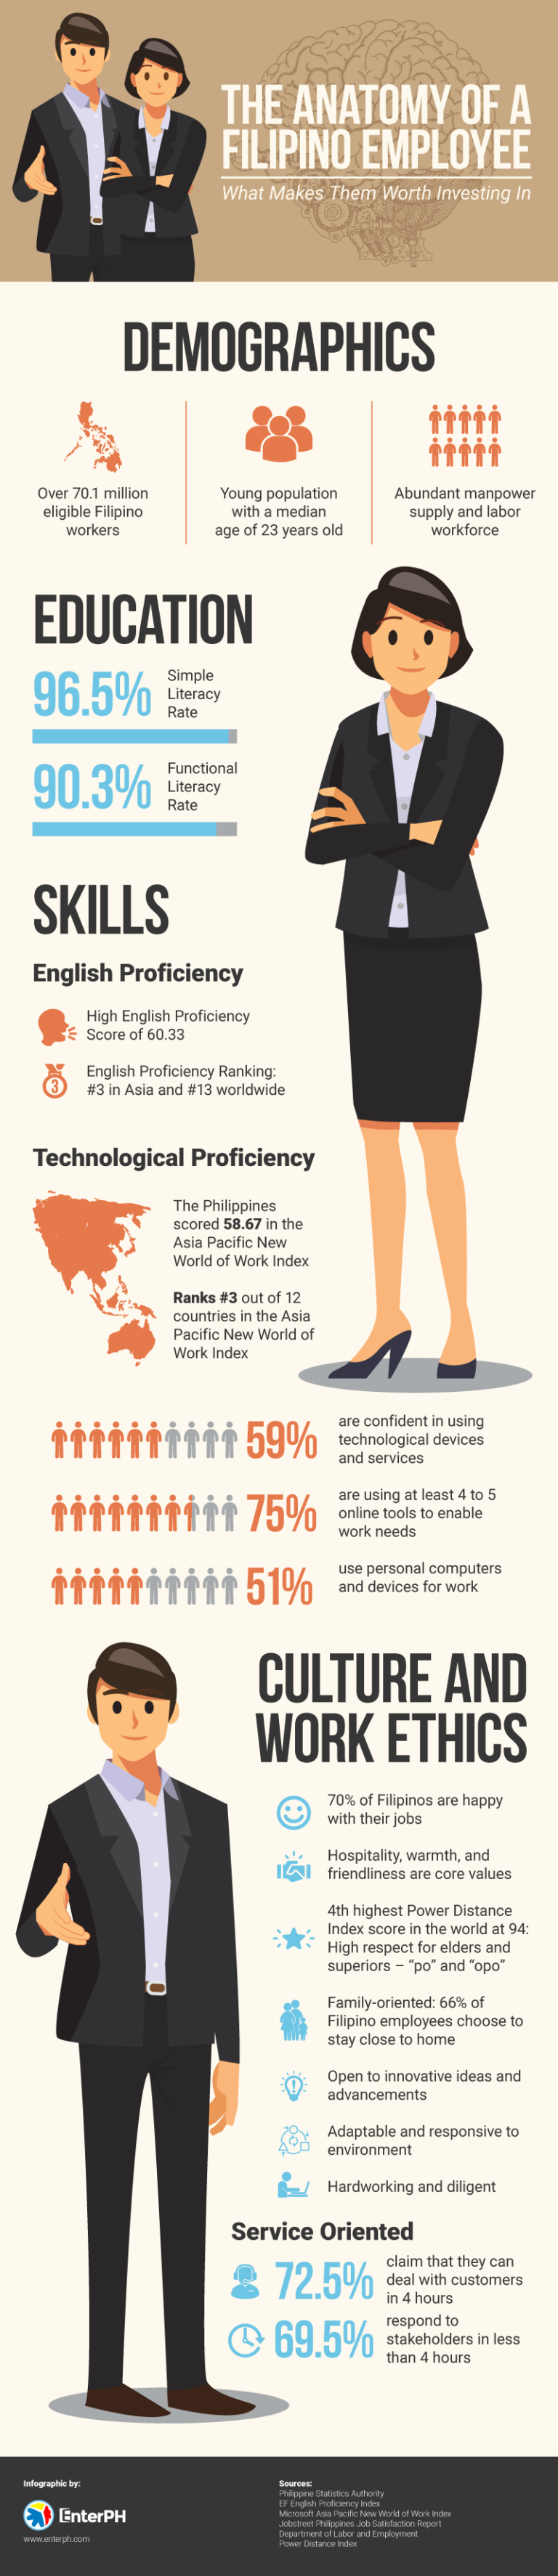 The Anatomy of a Filipino Employee: What Makes Them Worth Investing In [Infographic]